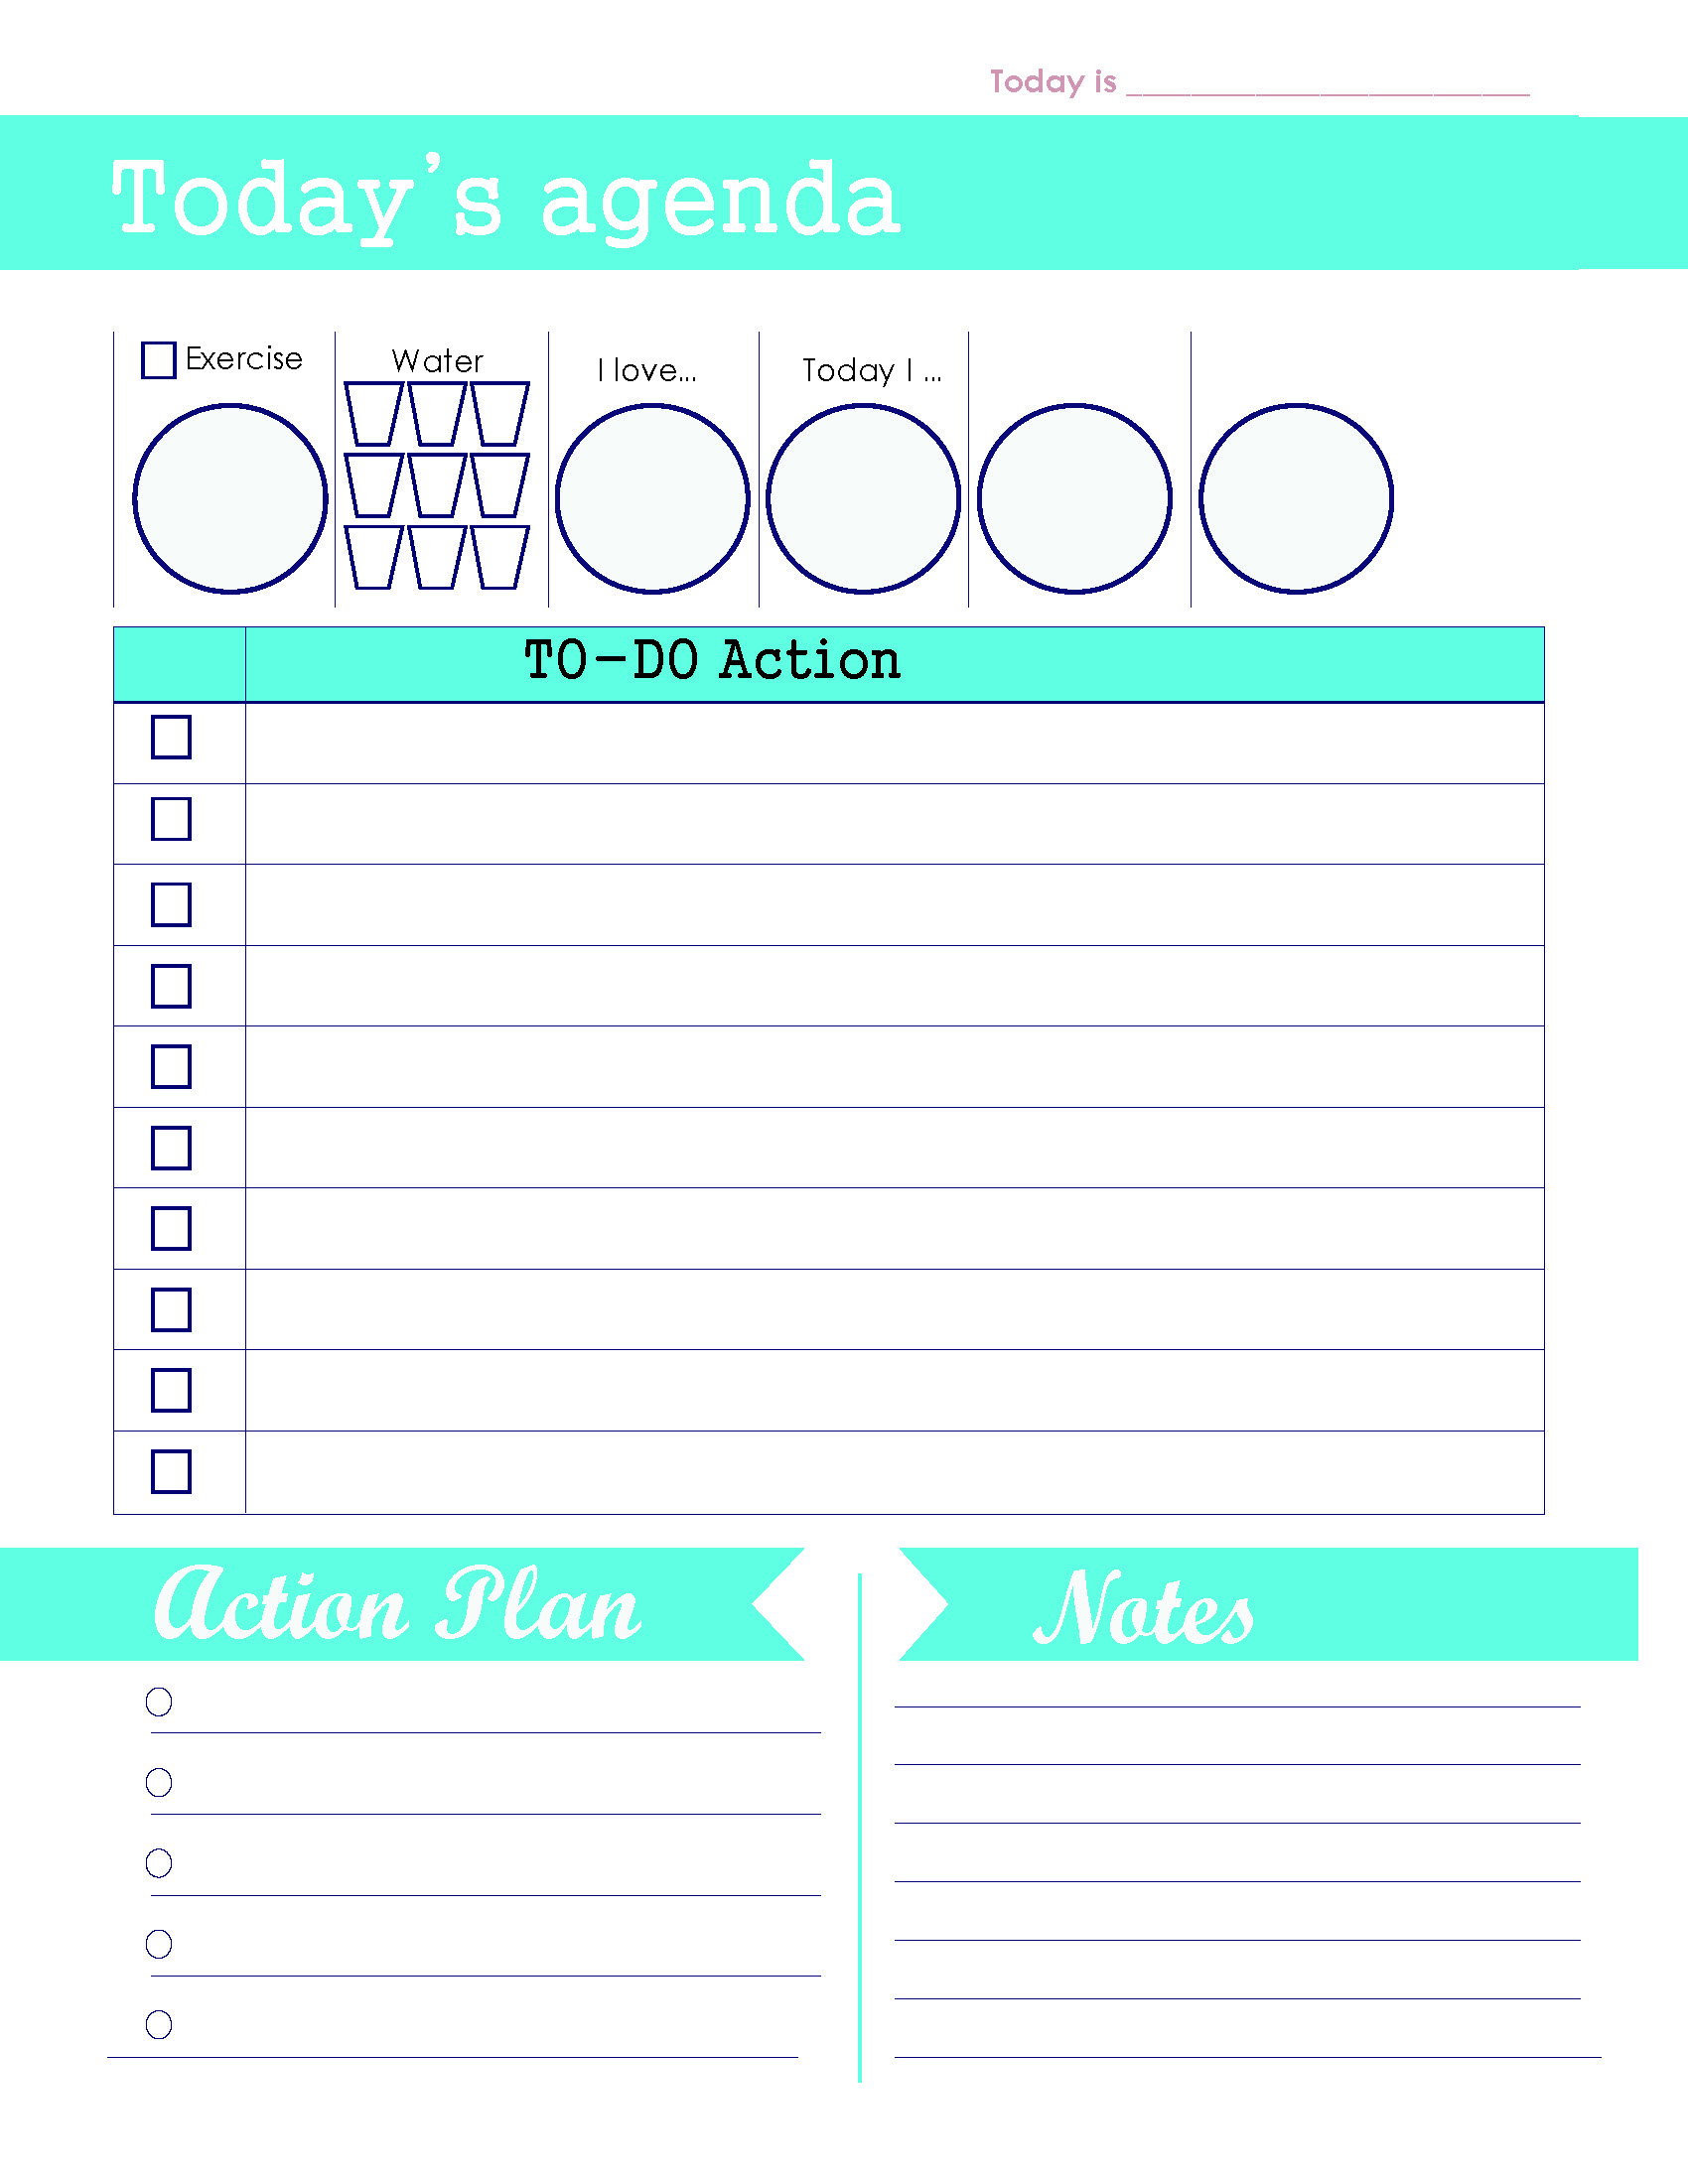 Daily Agenda To Do List Template main image